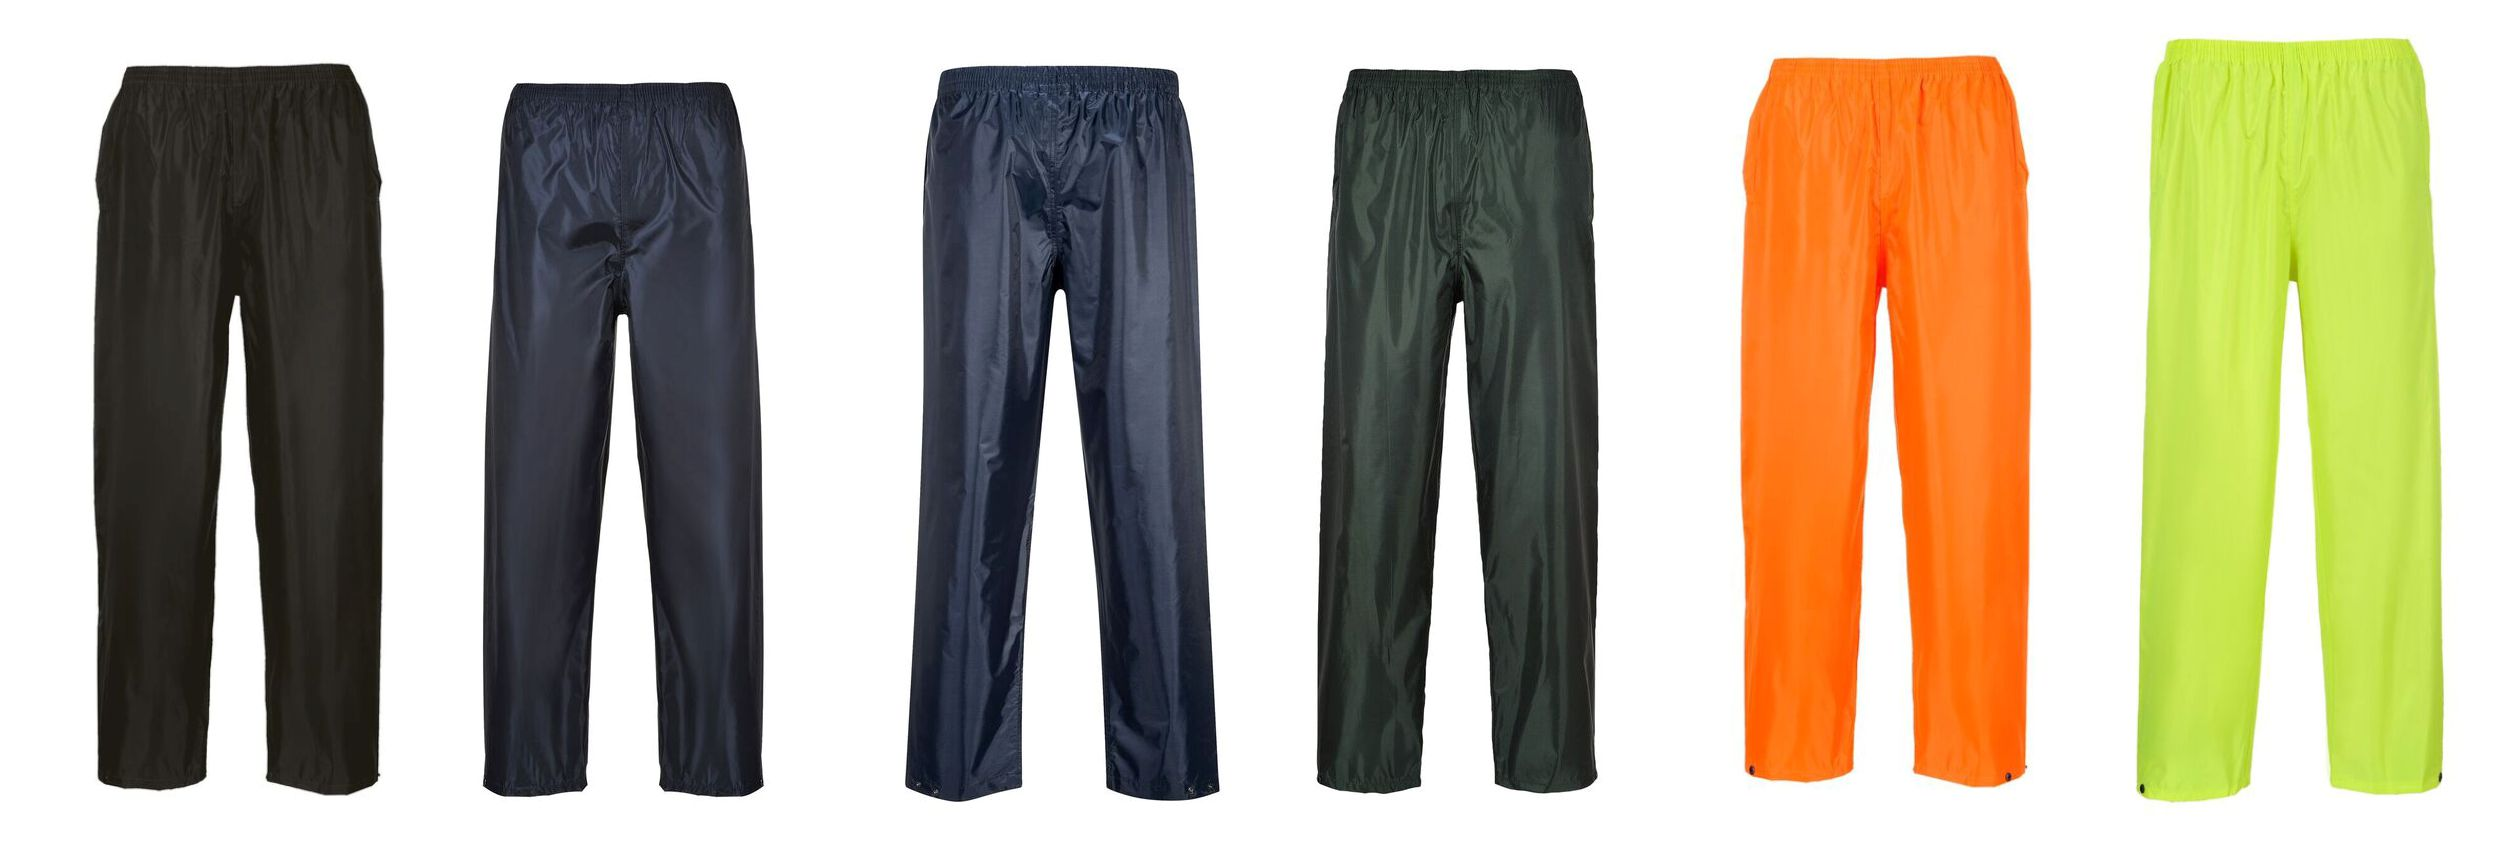 Portwest S441 Lewis waterproof trousers